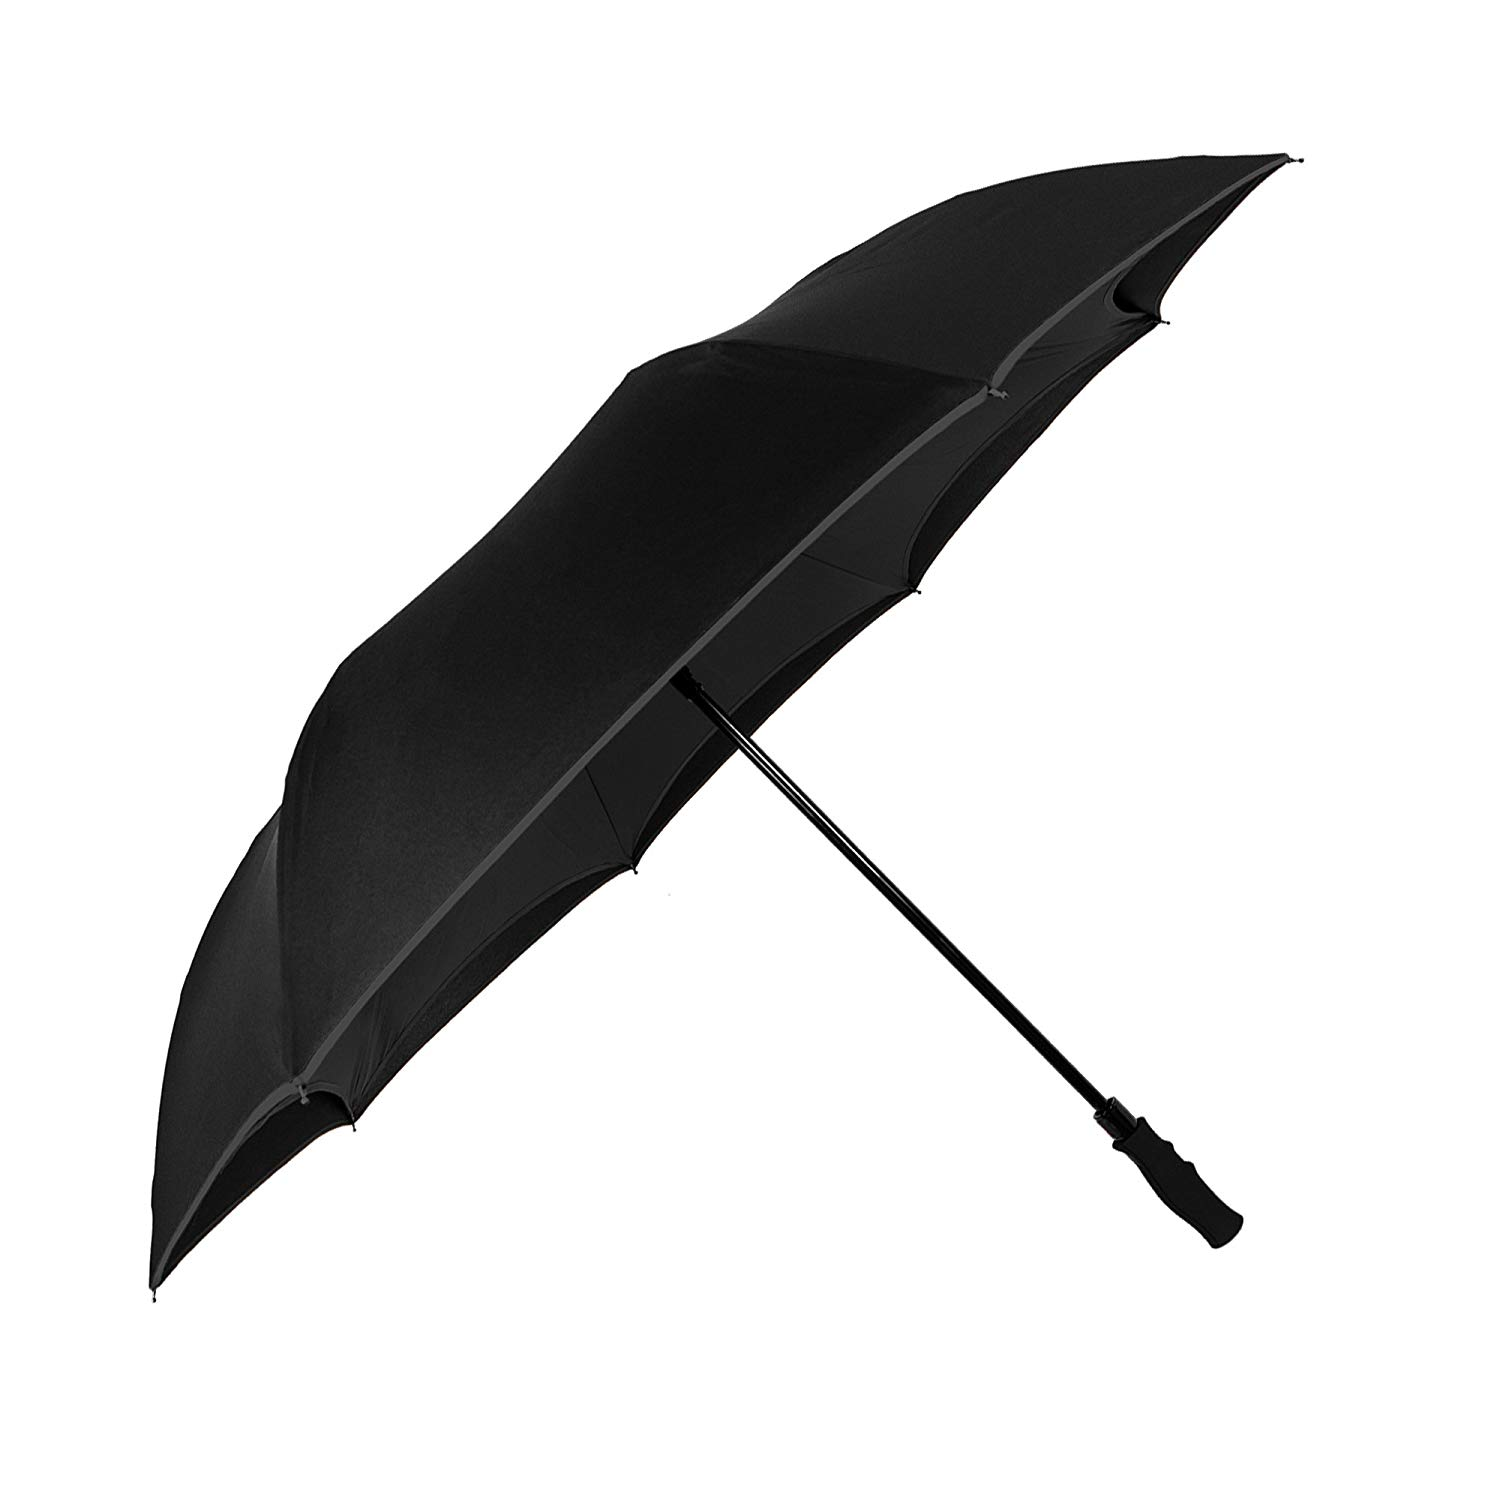 Hot sales reverse umbrella upside down windproof double layers fabric inverted umbrella with long handle